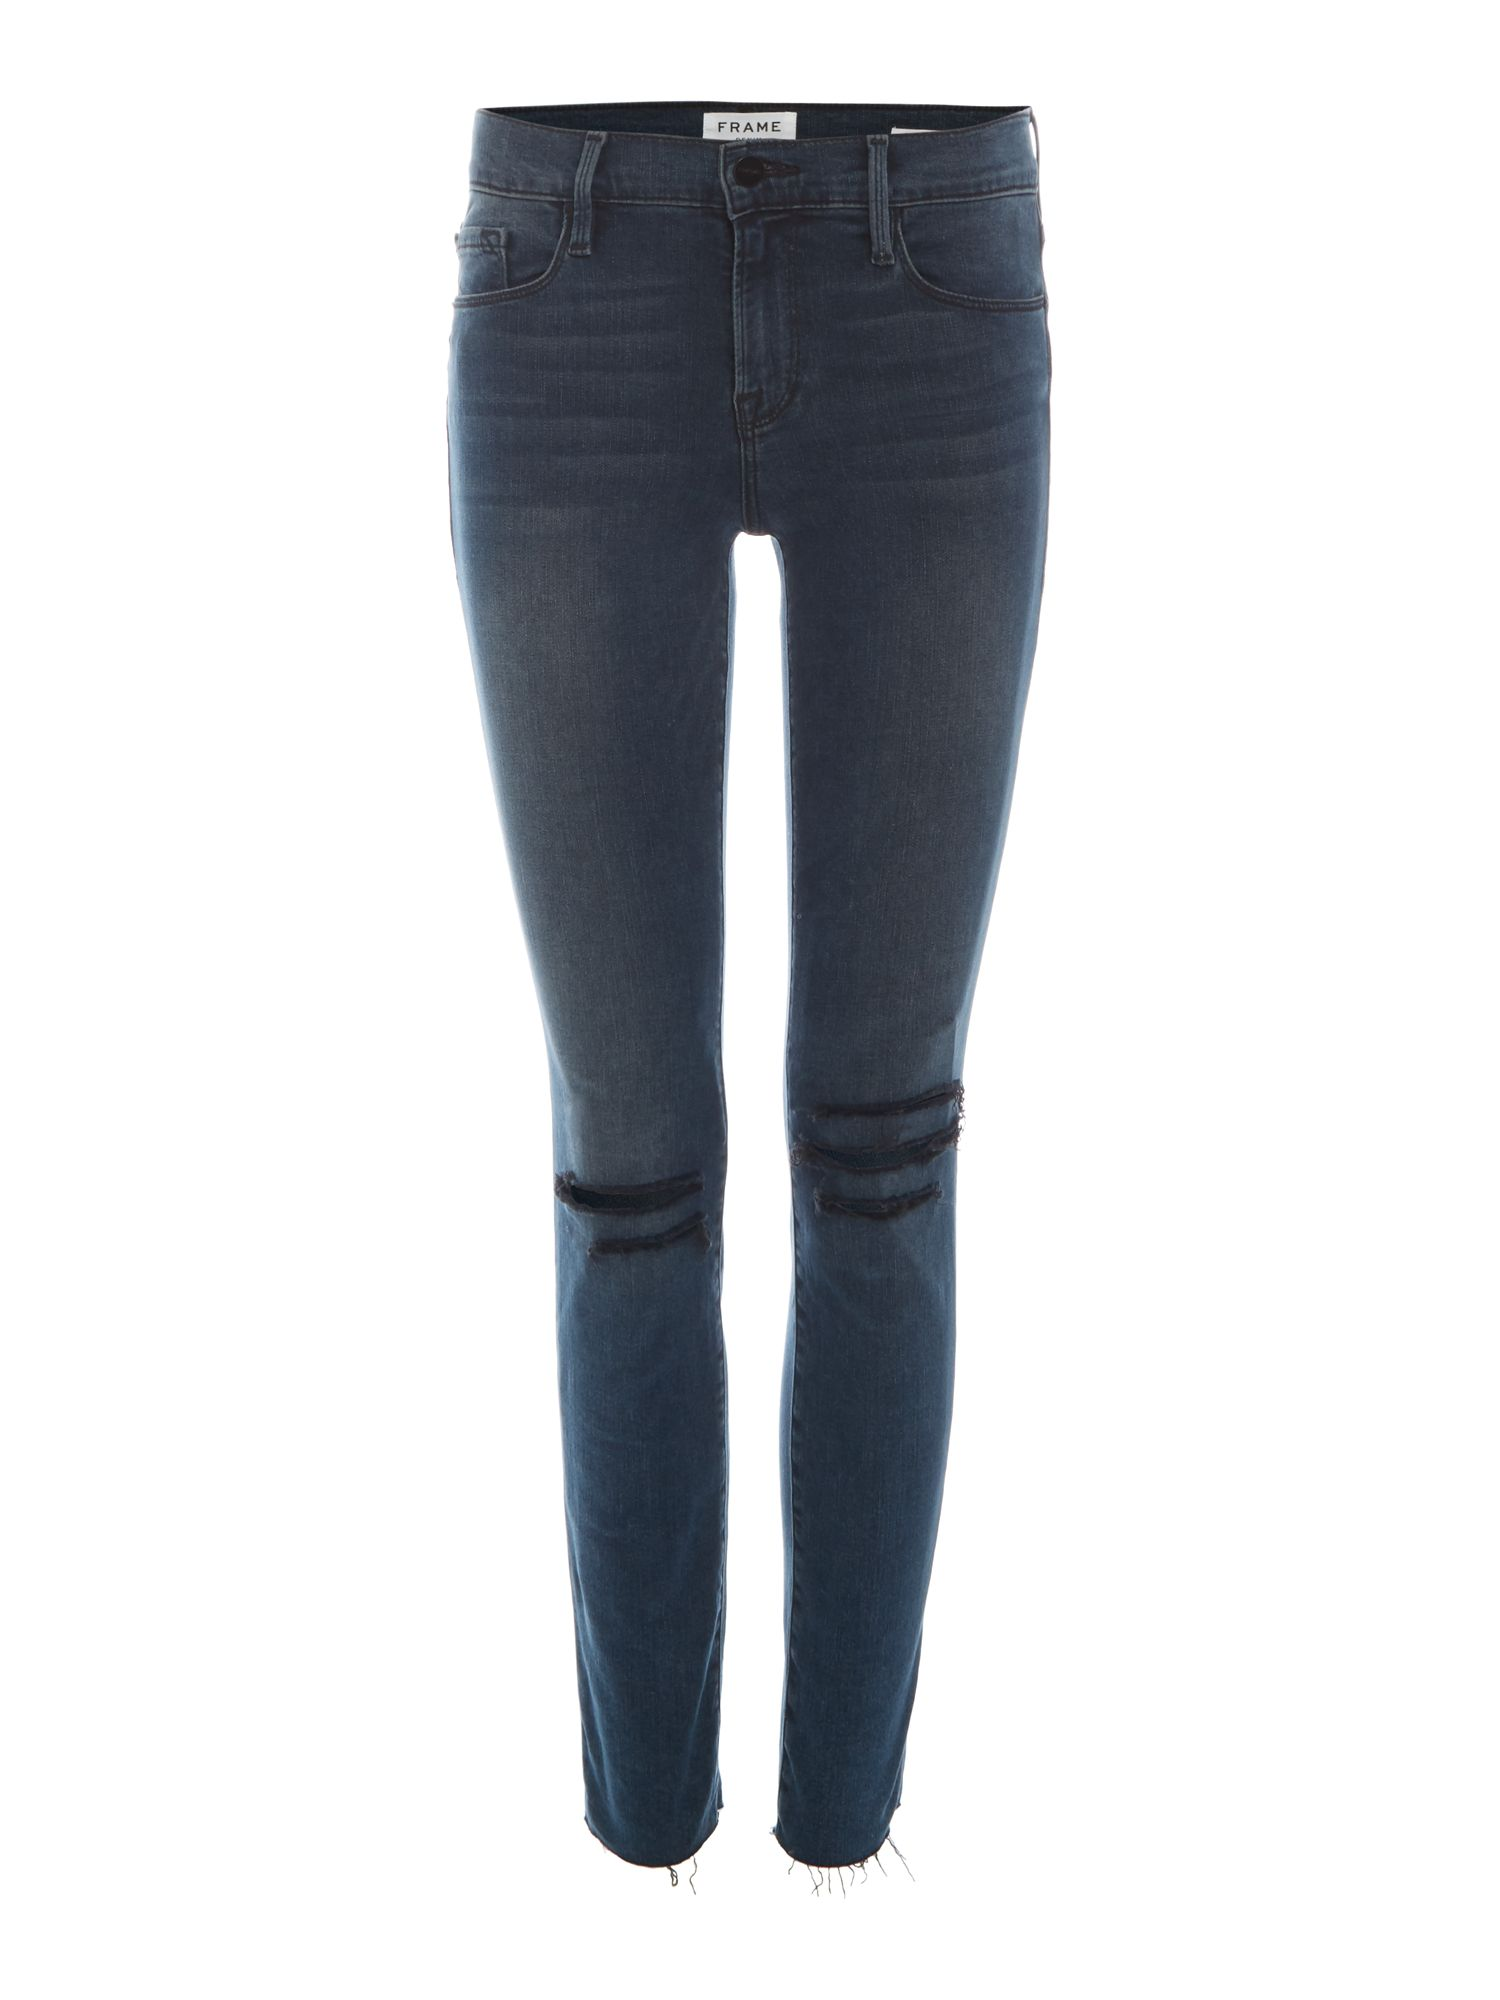 Frame Le Skinny De Jeanne Ripped Knee Jeans in Gifford, Denim Dark Wash